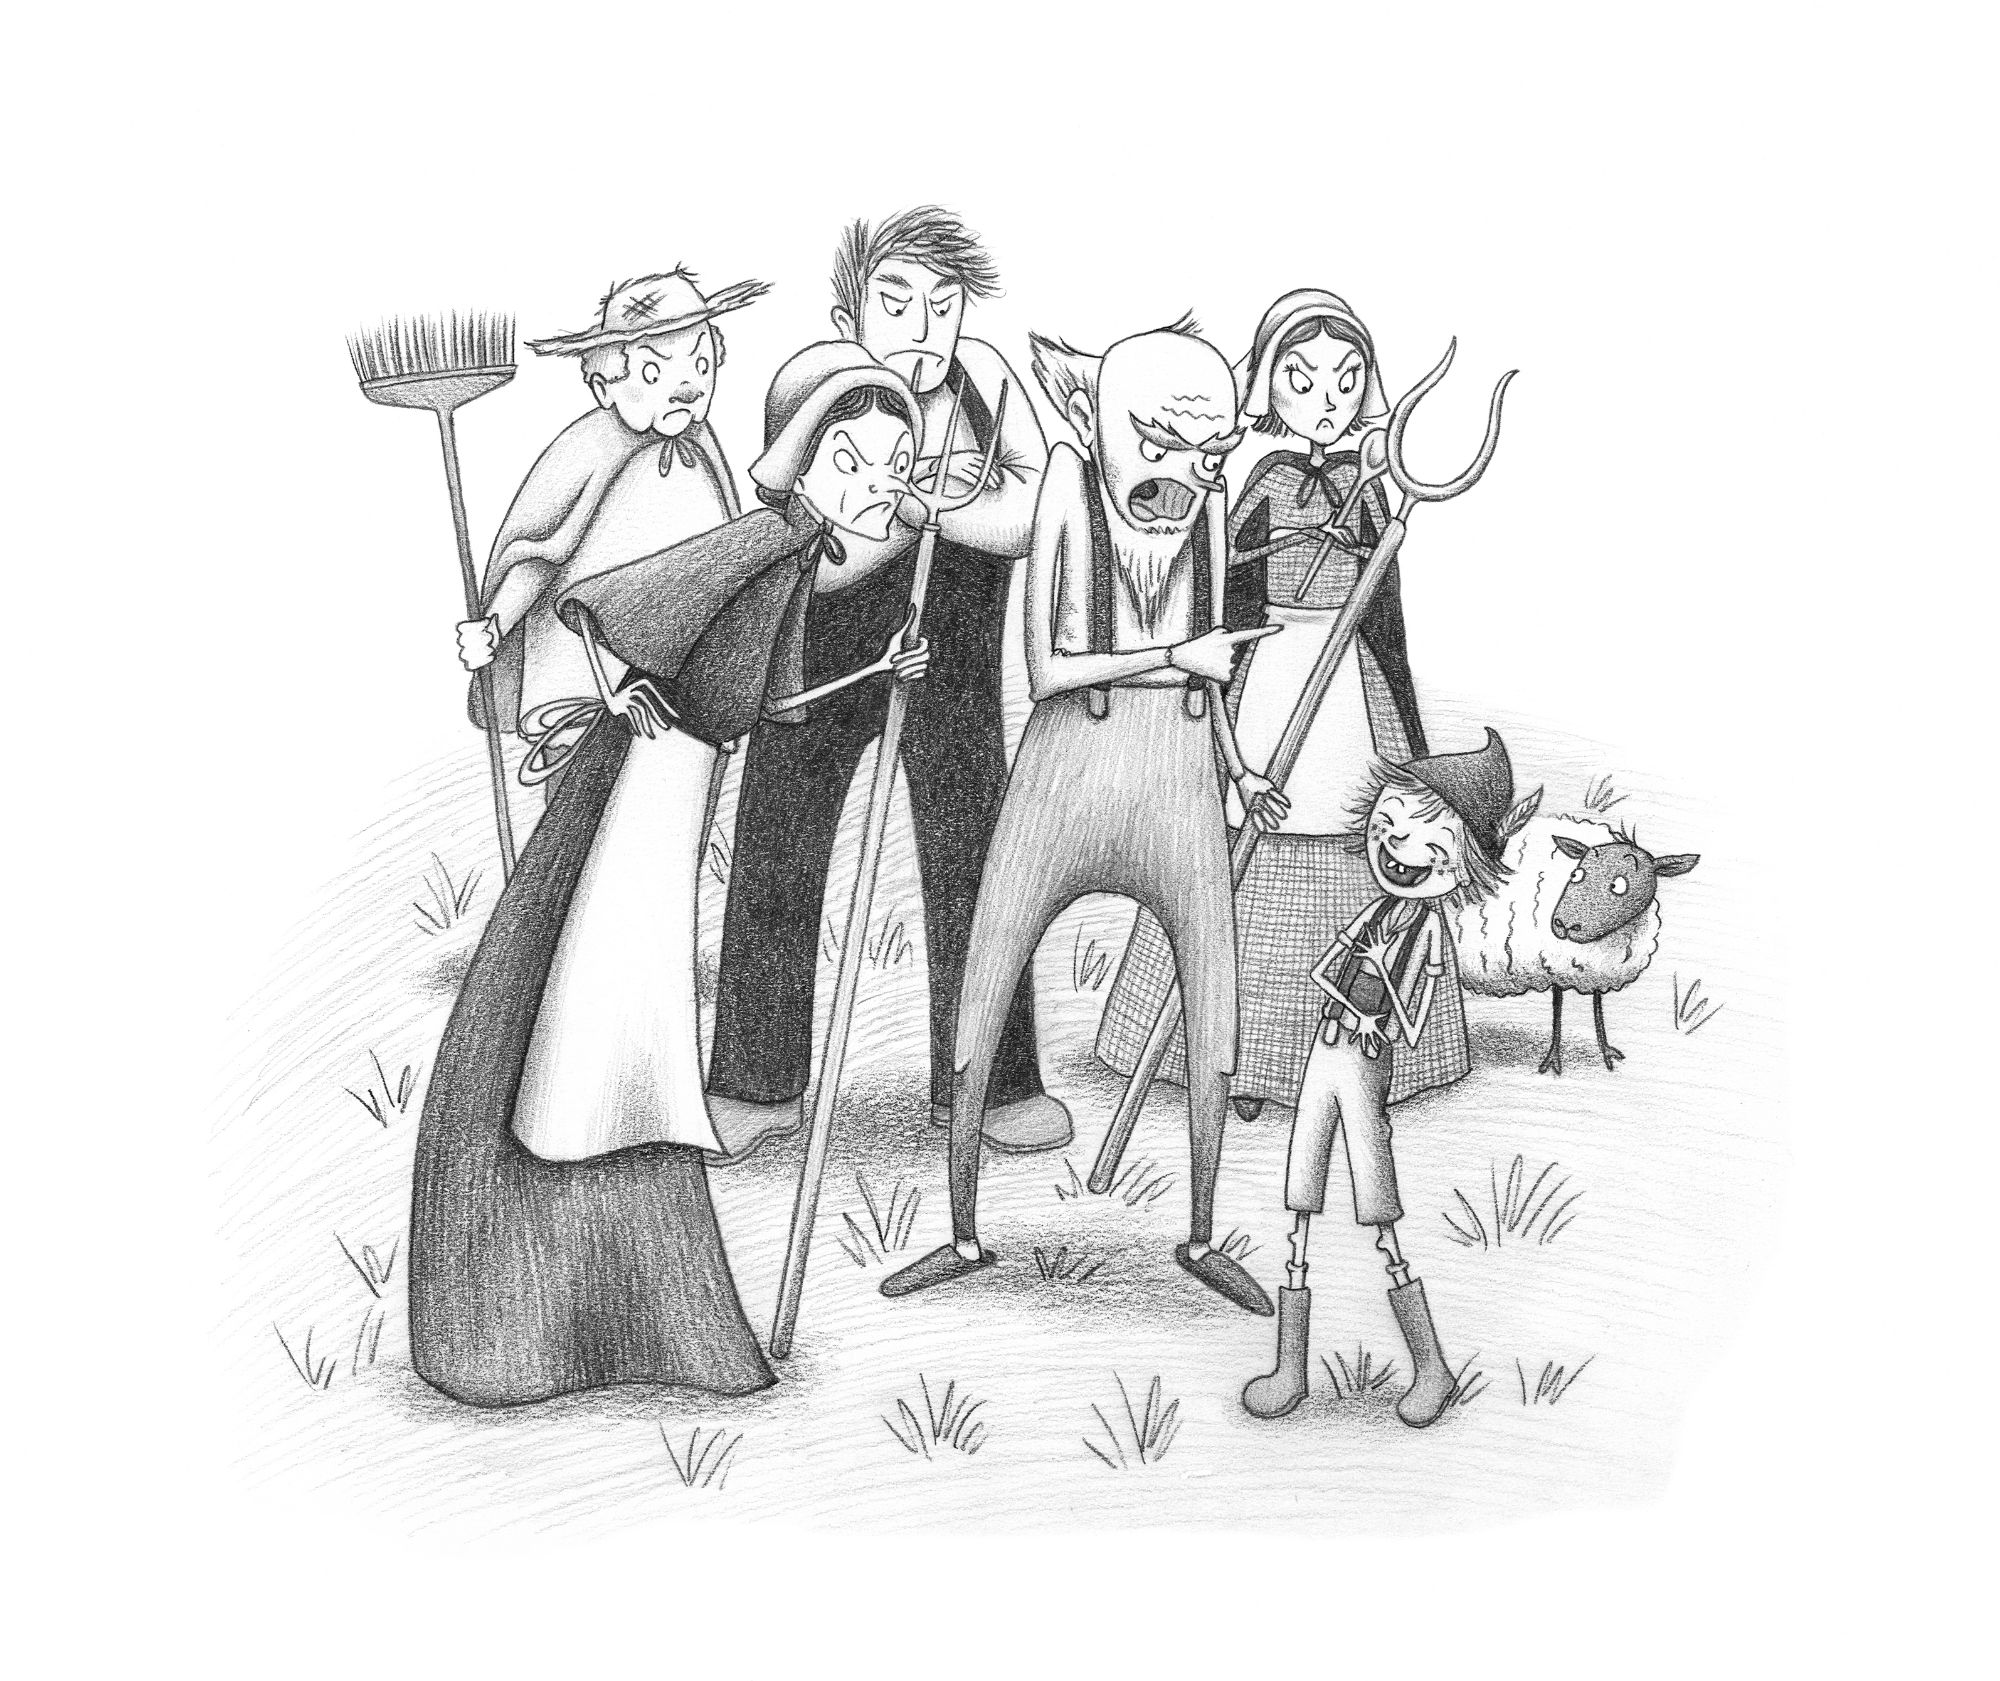 Angry villagers - the boy who cried wolf illustration